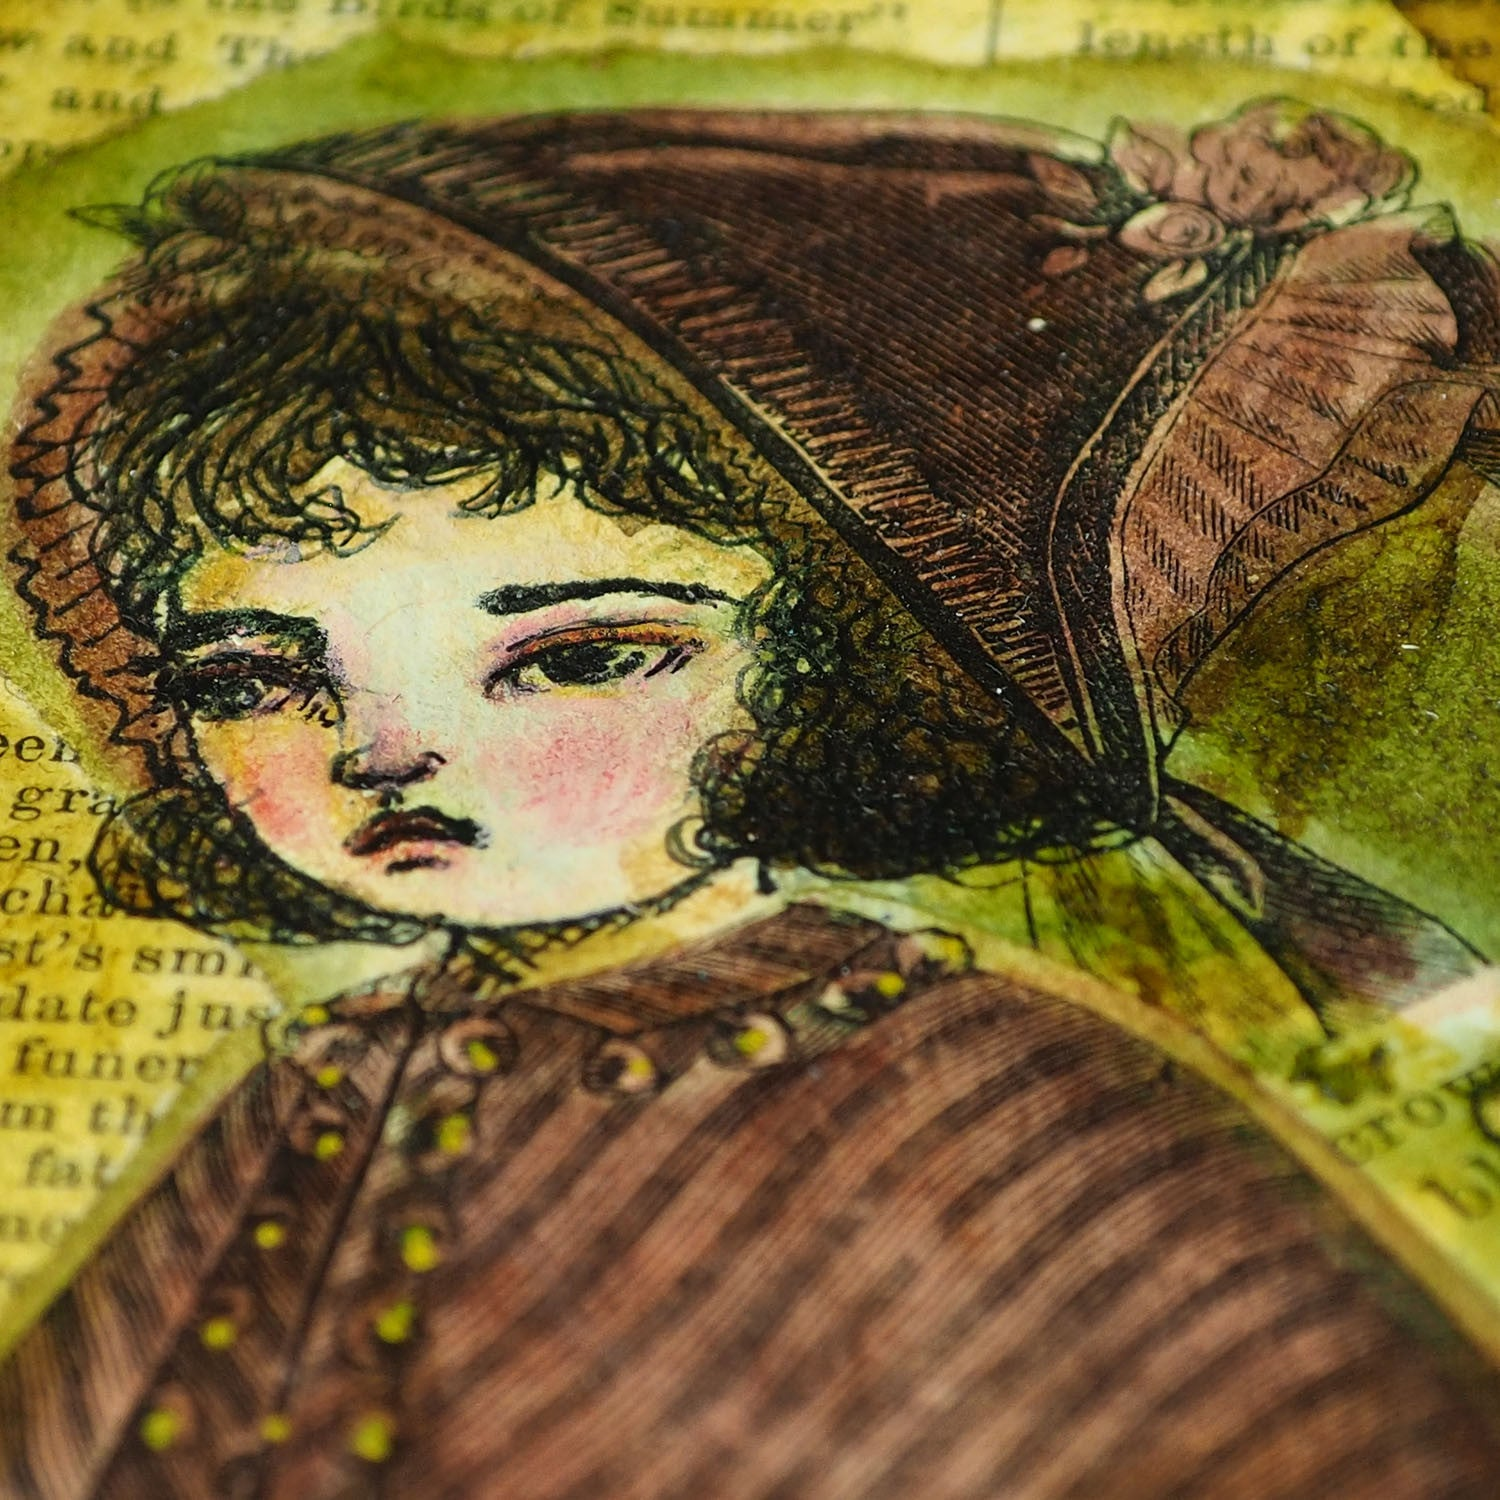 An original mixed media original panting by Danita. Little red riding hood in collage, watercolors and inks.